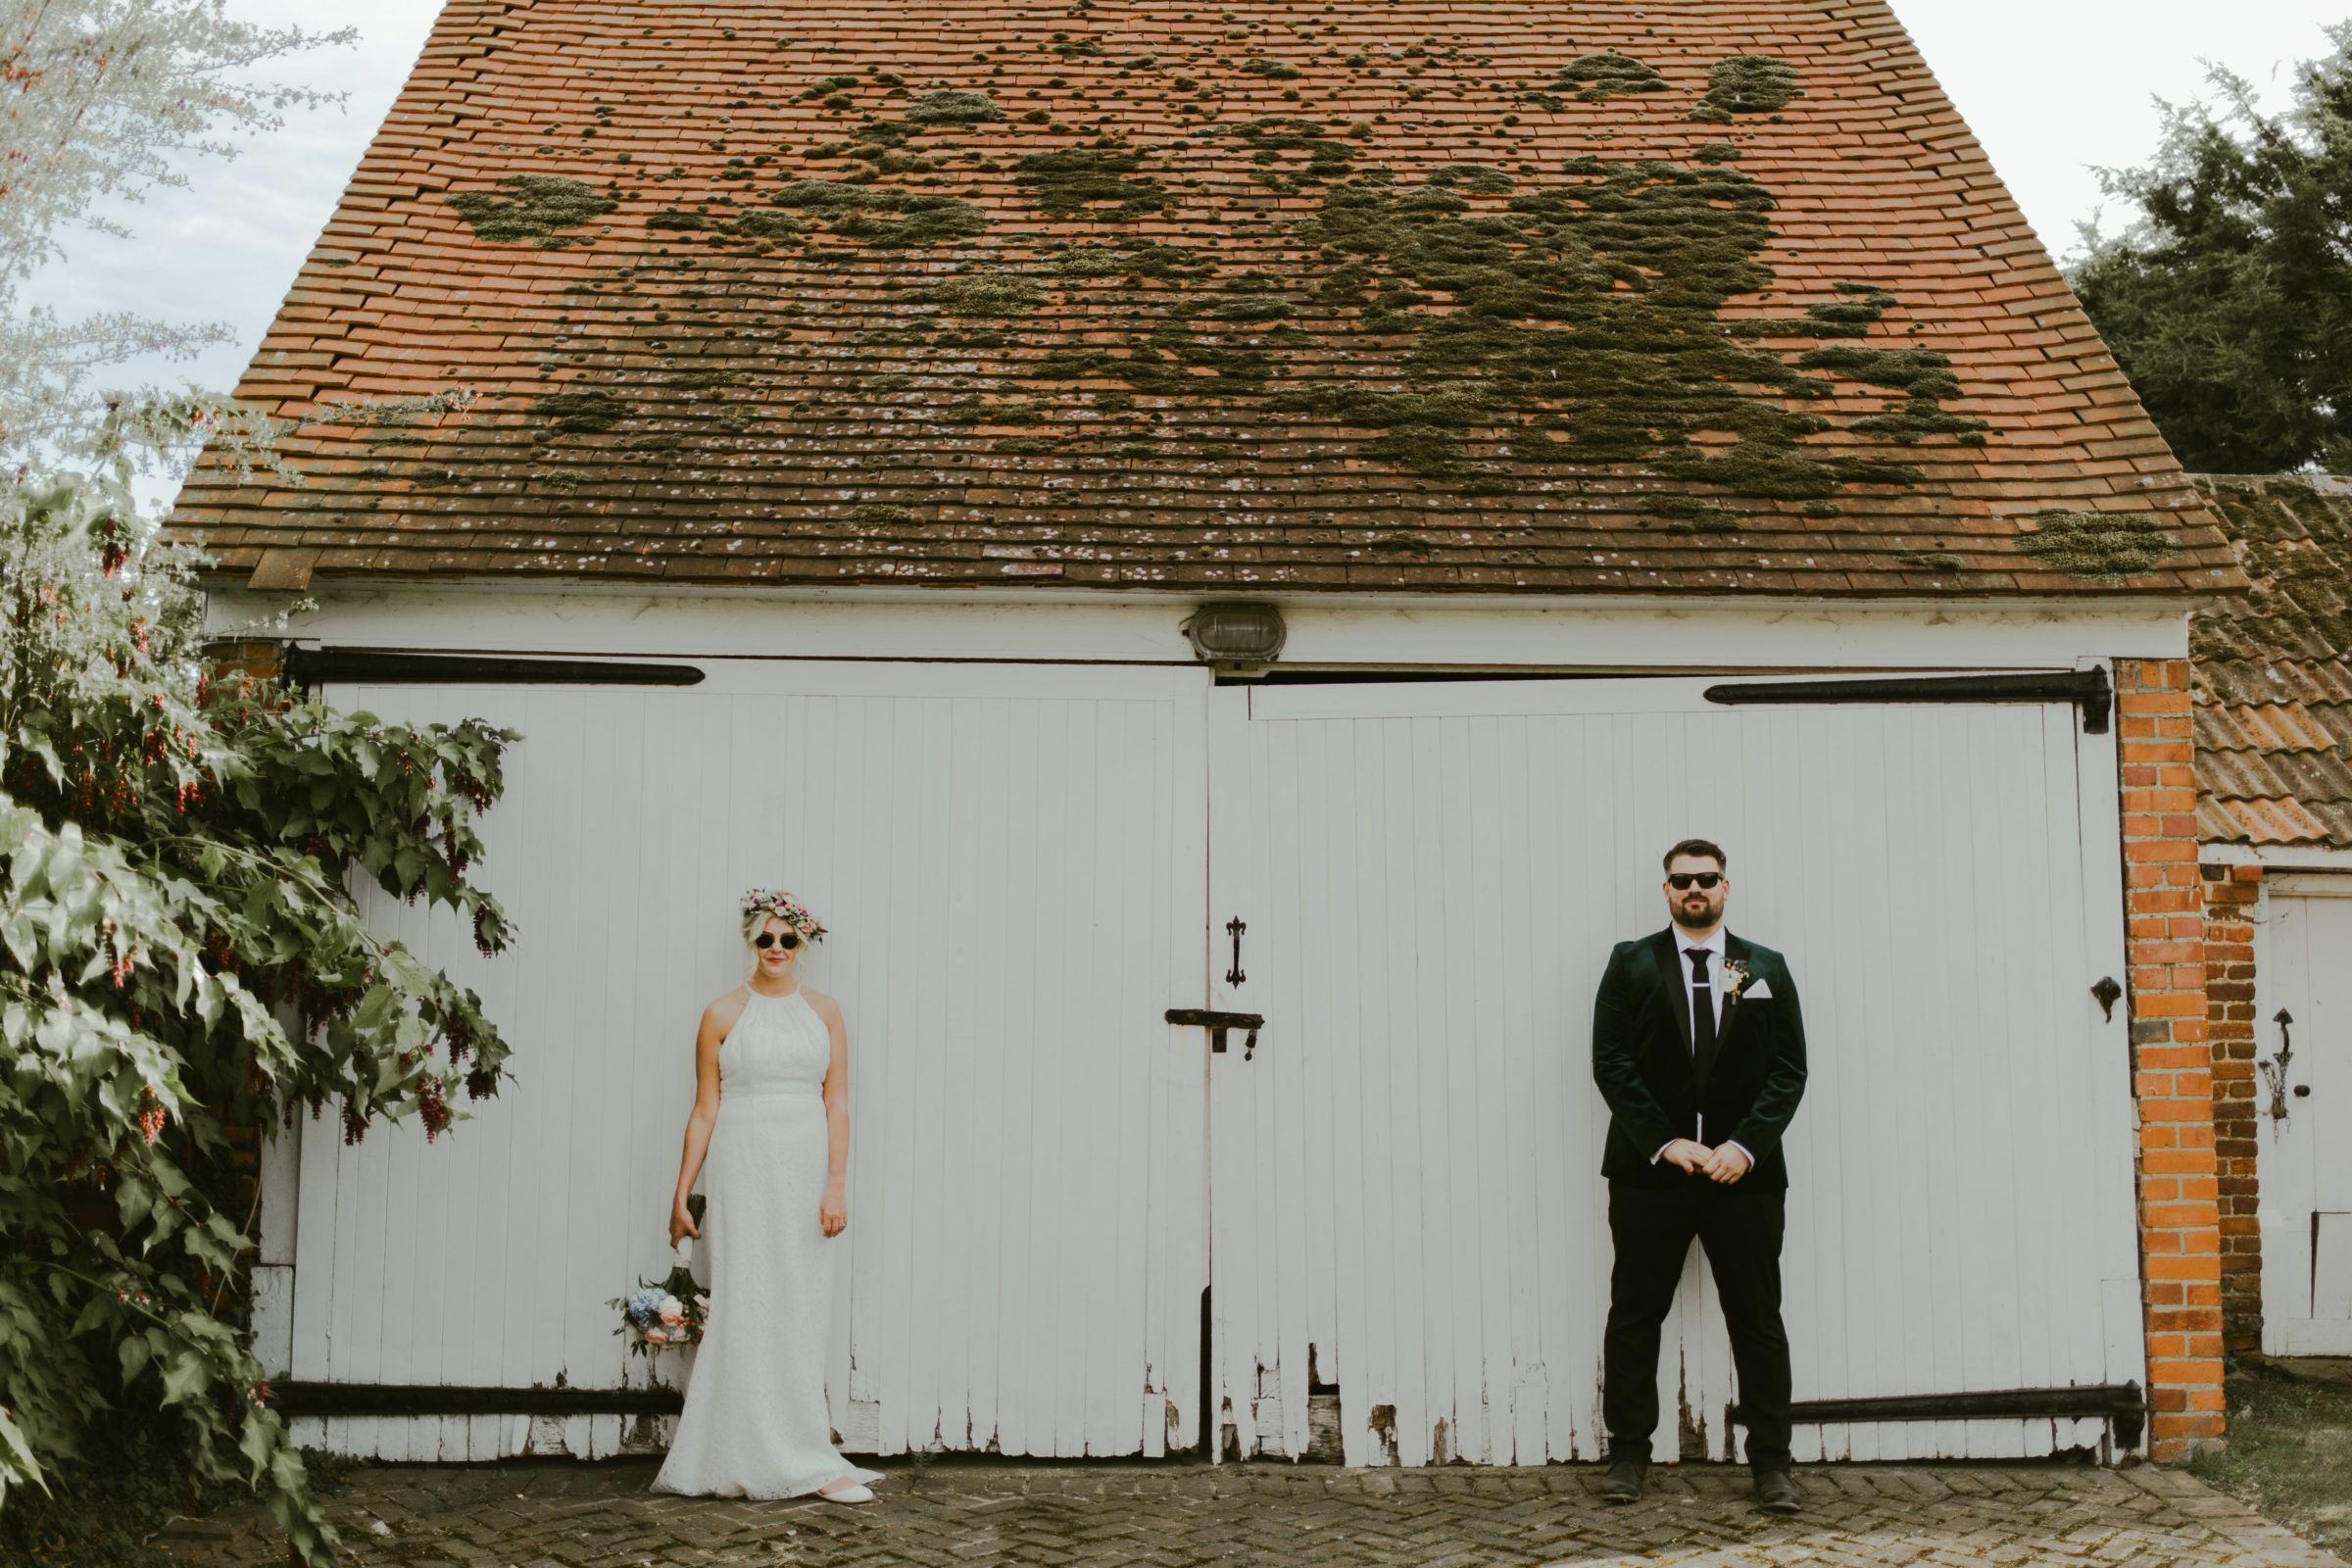 lillibrooke-manor-wedding-venue-photography-surrey-photographer-alternative-quirky